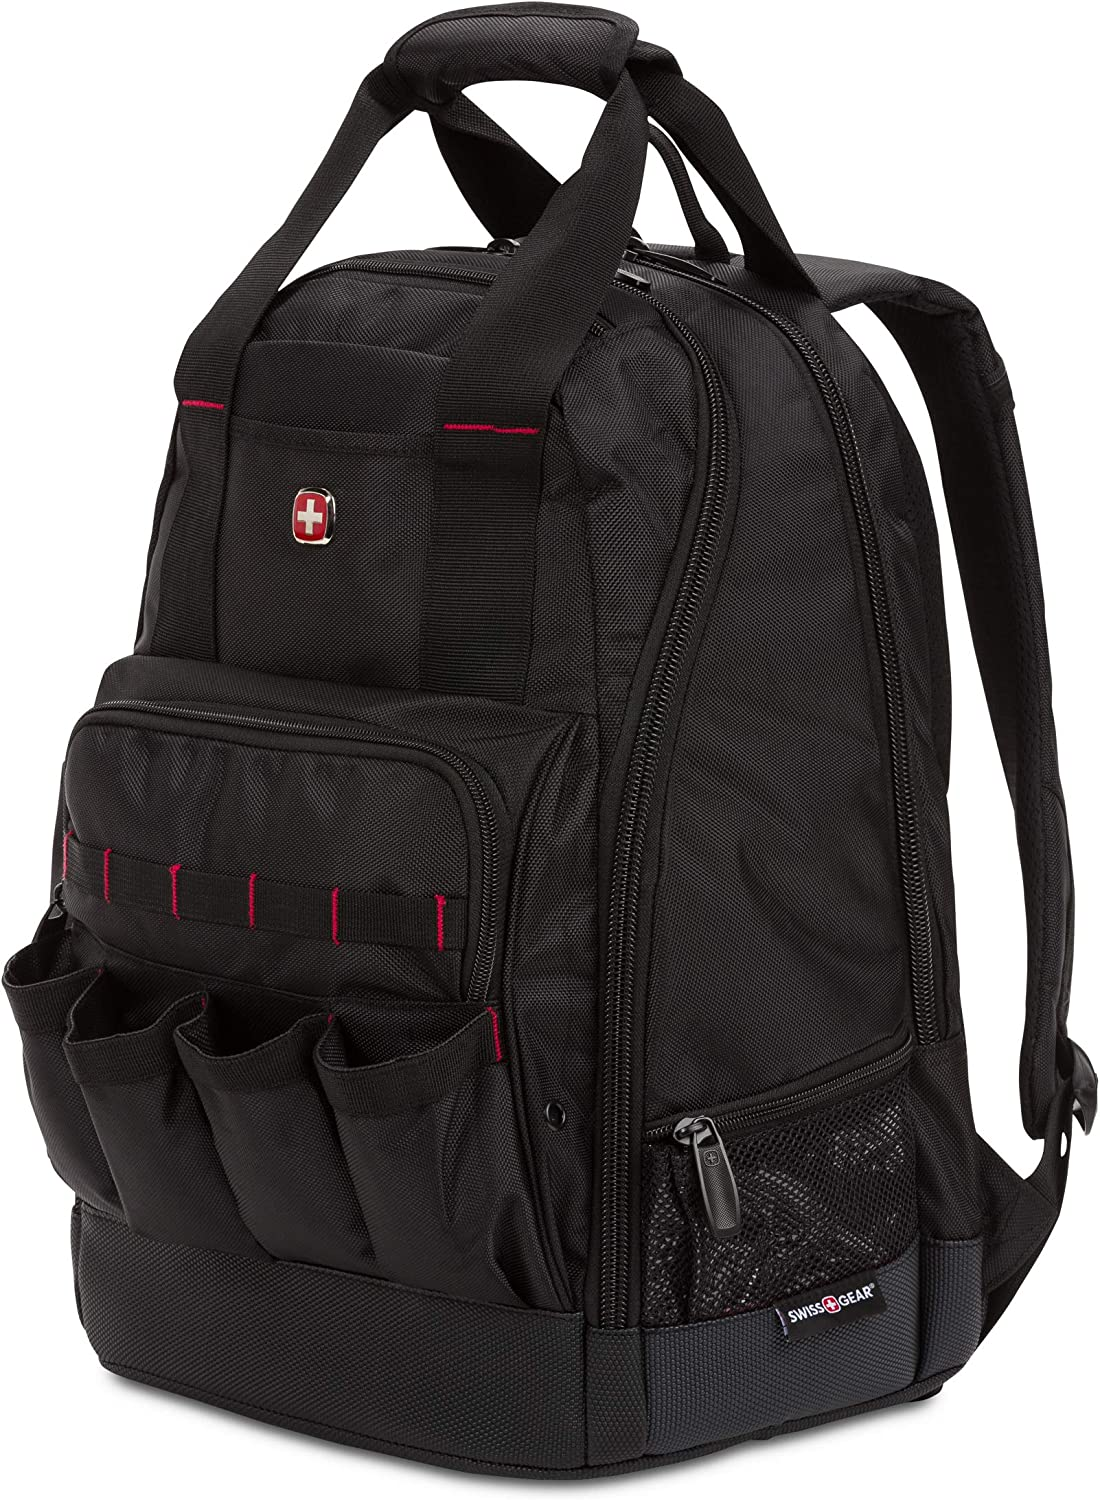 SWISSGEAR 2767 Tool Bag Large Durable Work Pack Backpack With Padded Laptop Compartment | Tool Storage, Part Organization, Wet/Dry Pocket - Black